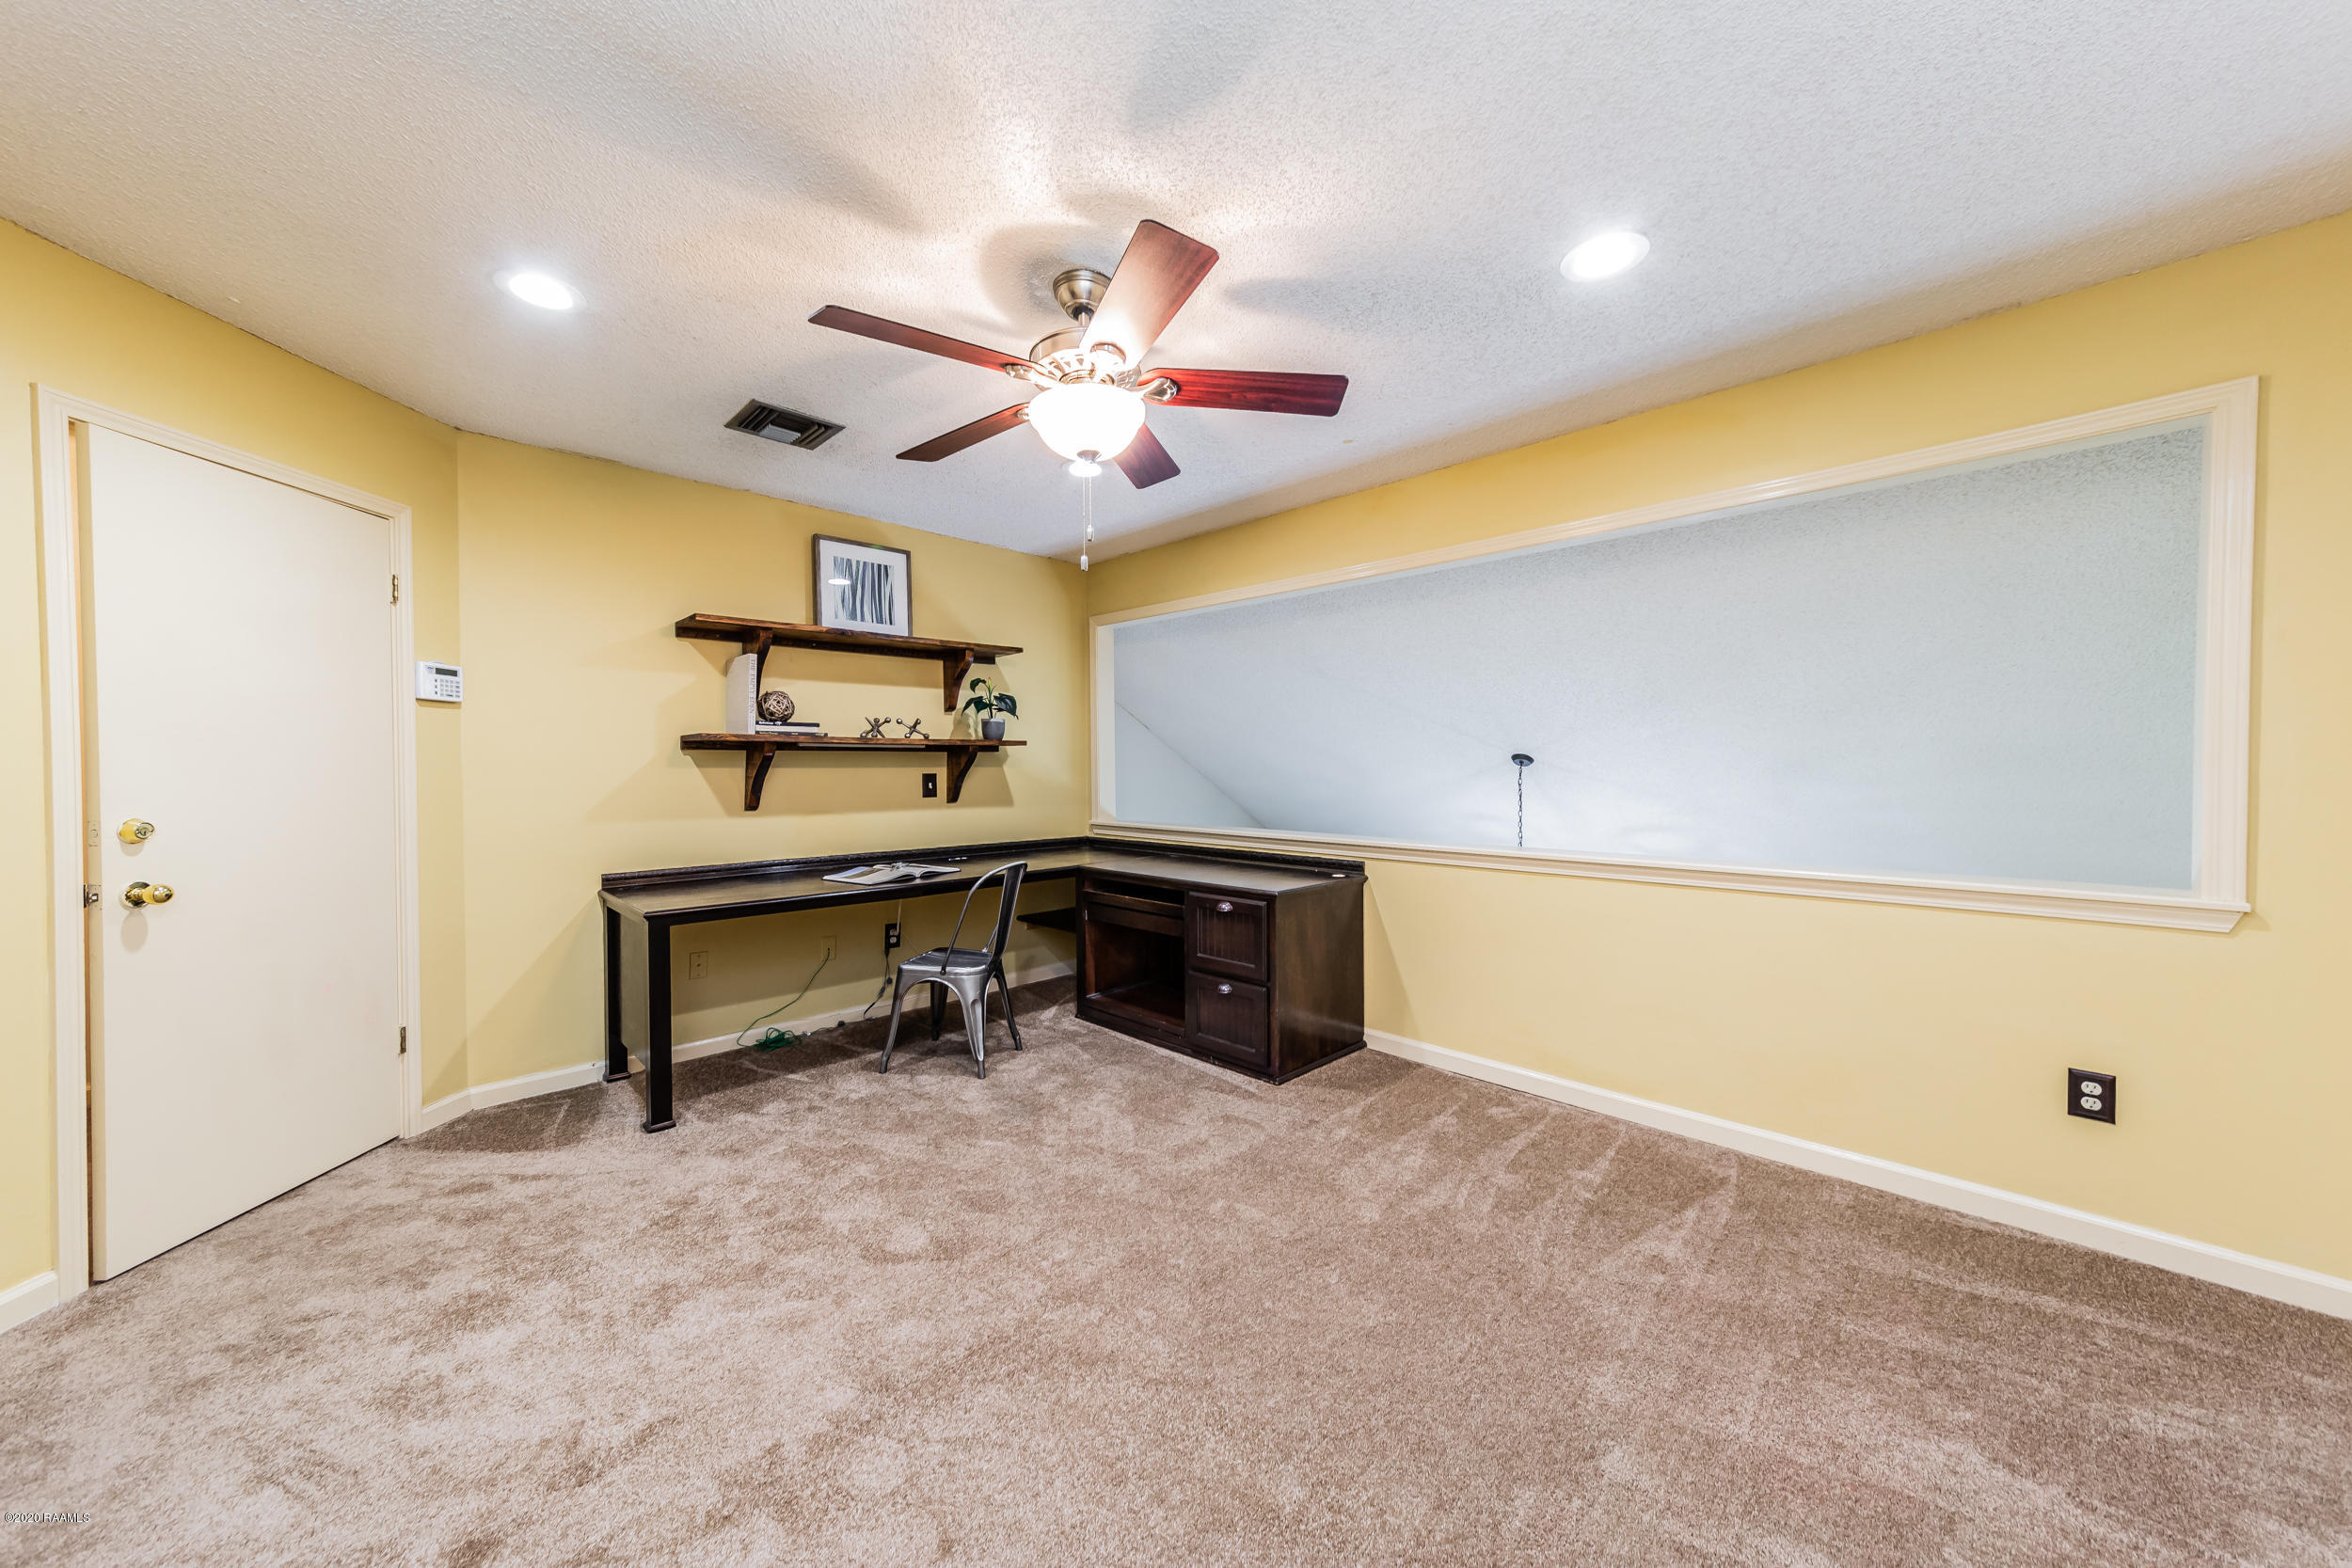 1008 Carriage Light Loop, Youngsville, LA 70592 Photo #17